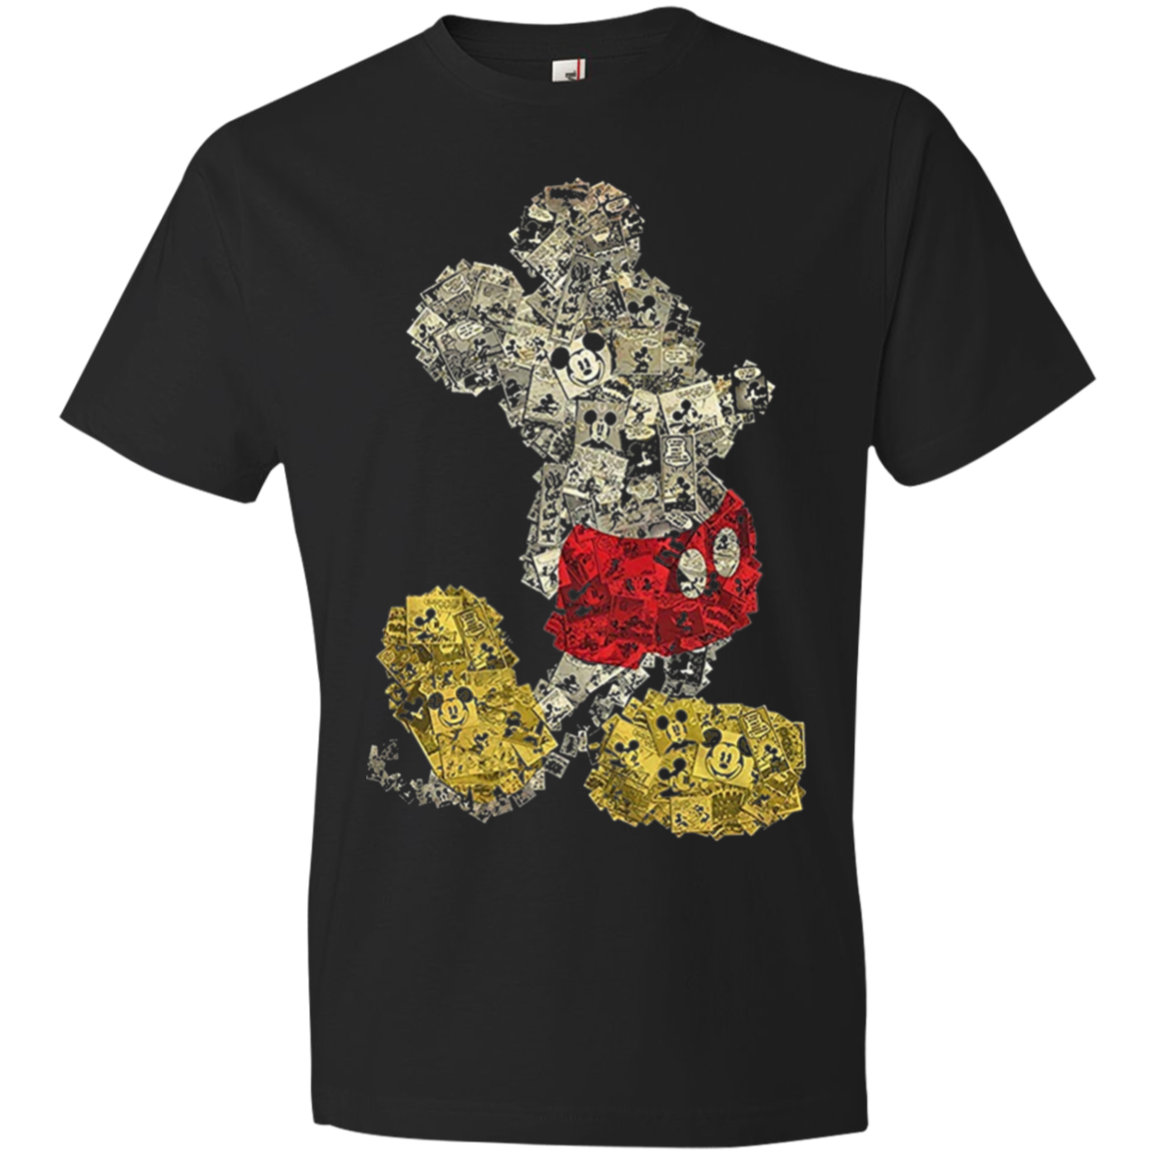 Photo Mickey Mouse Vintage Youth/Adult